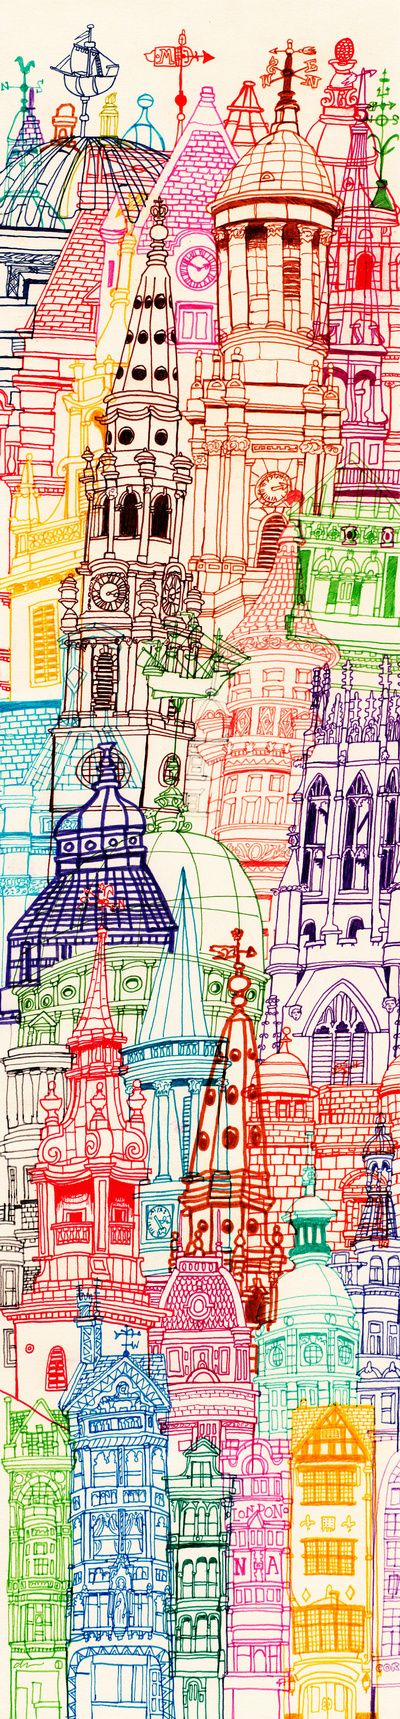 London Towers Art Print - This print would look really nice in a picture frame on a wall!!